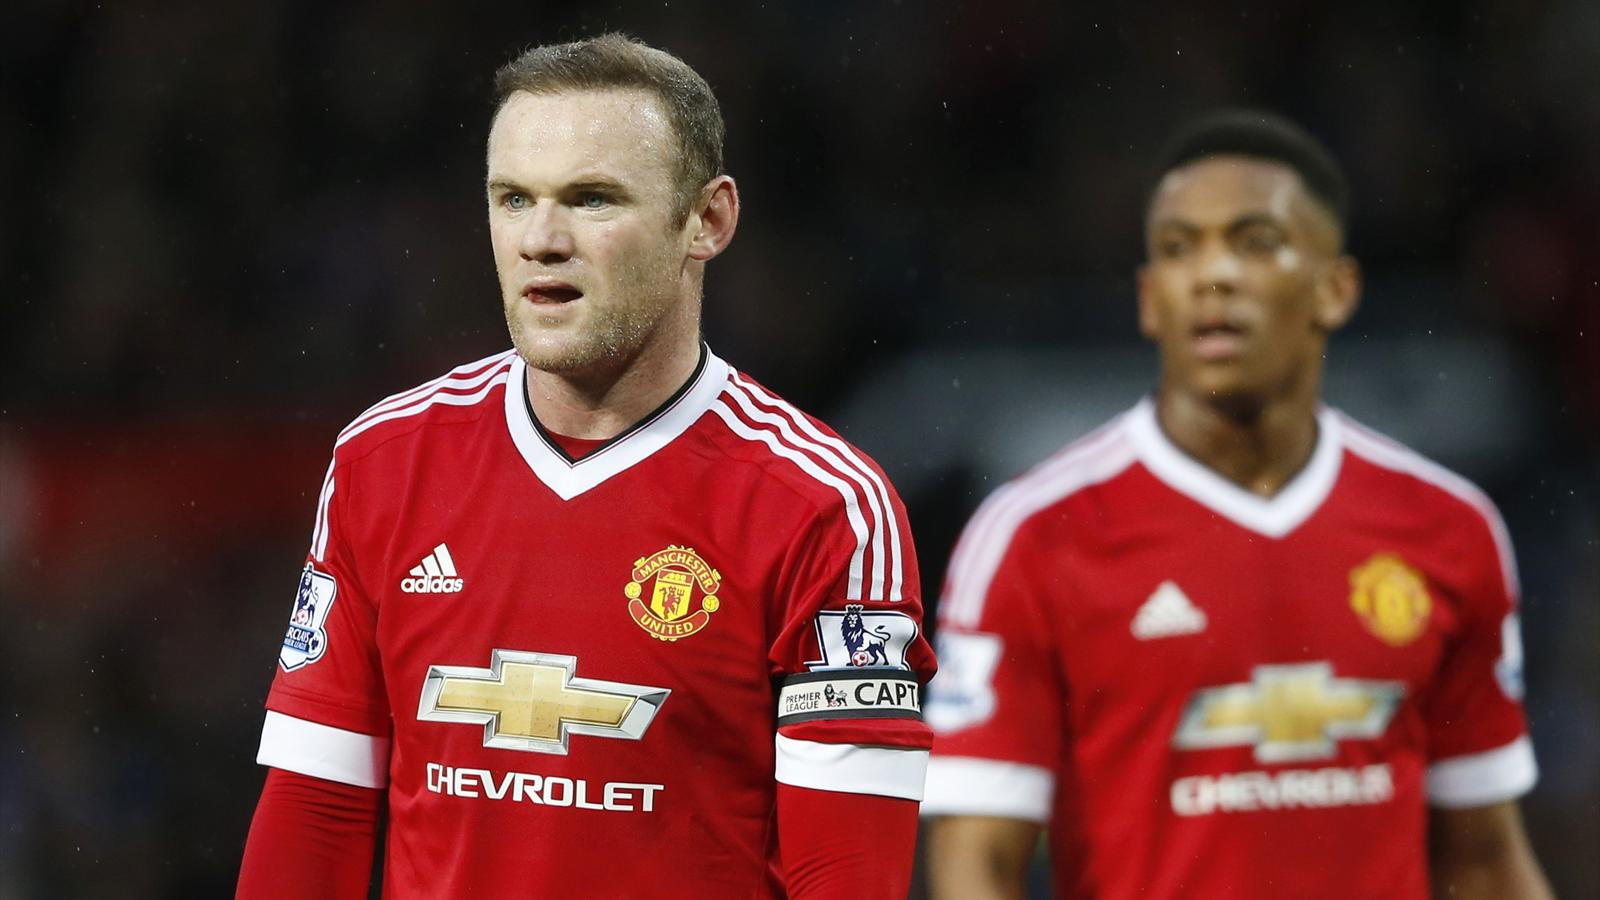 Manchester United's Wayne Rooney and Anthony Martial against Swansea